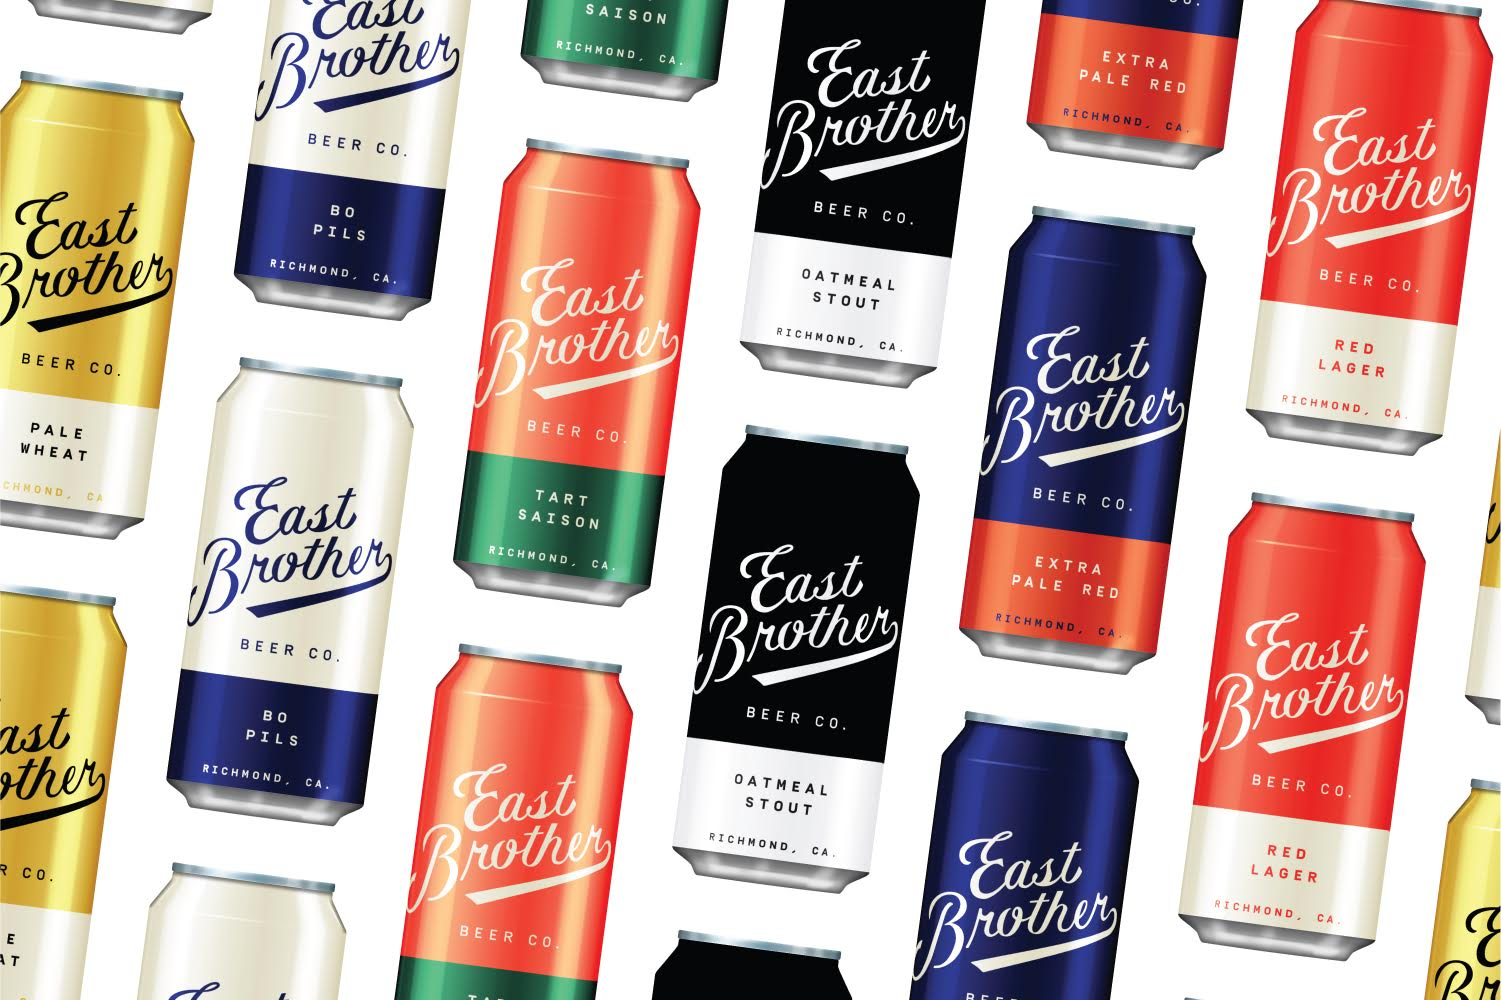 East Brother Beer Company branding and package design by Good Beer Hunting Studio in USA